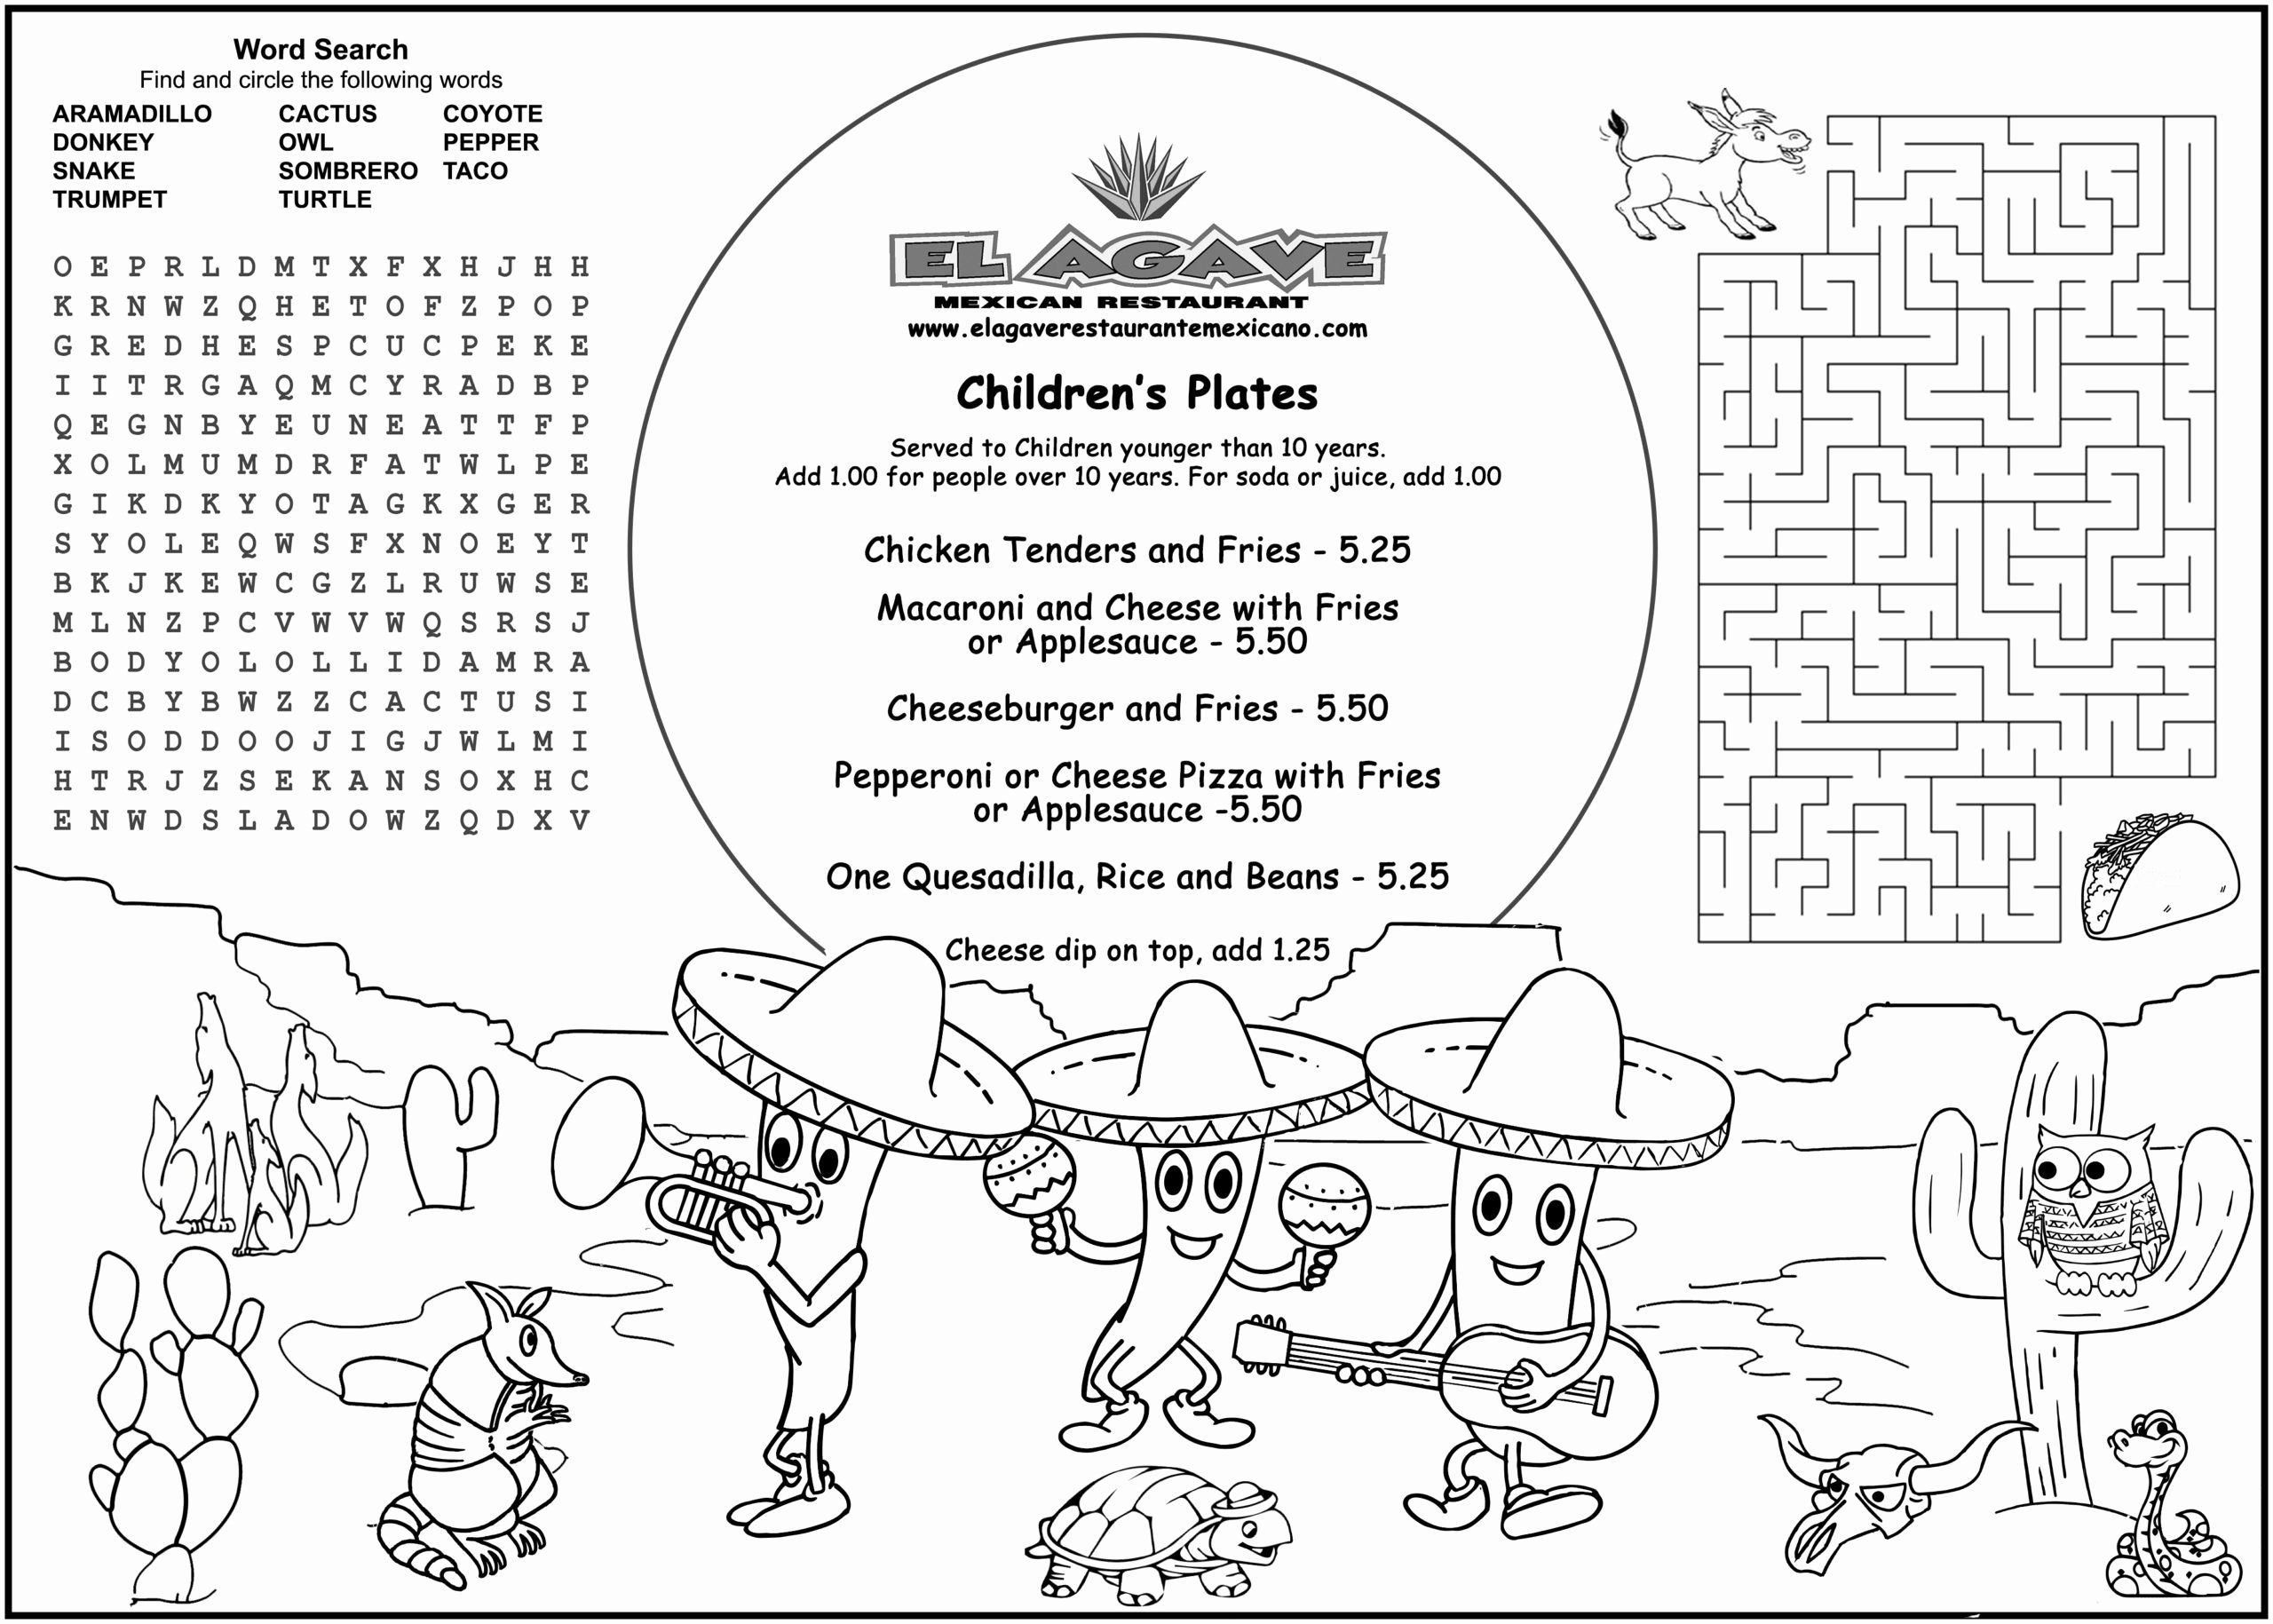 Snoopy Valentine Coloring Page New Top 20 Out This World Southwest Kids Menu Placemat Valentine Coloring Pages Coloring Pages For Boys Preschool Coloring Pages